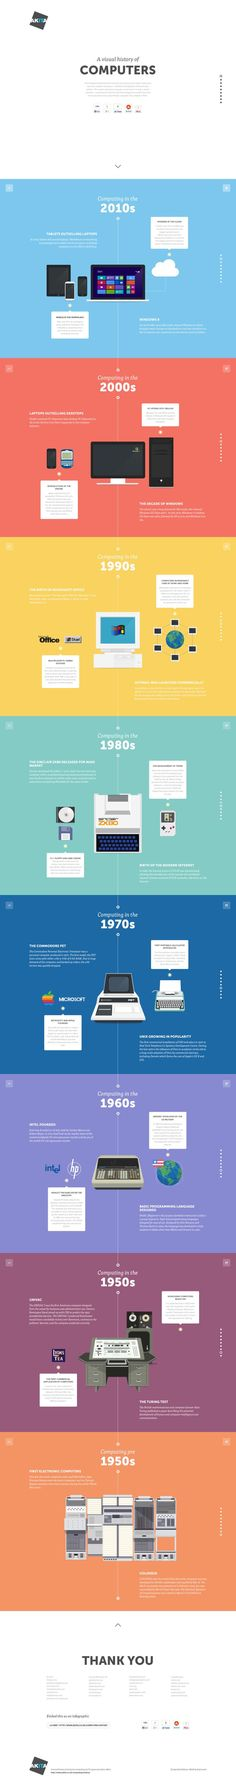 A Visual History of Computing